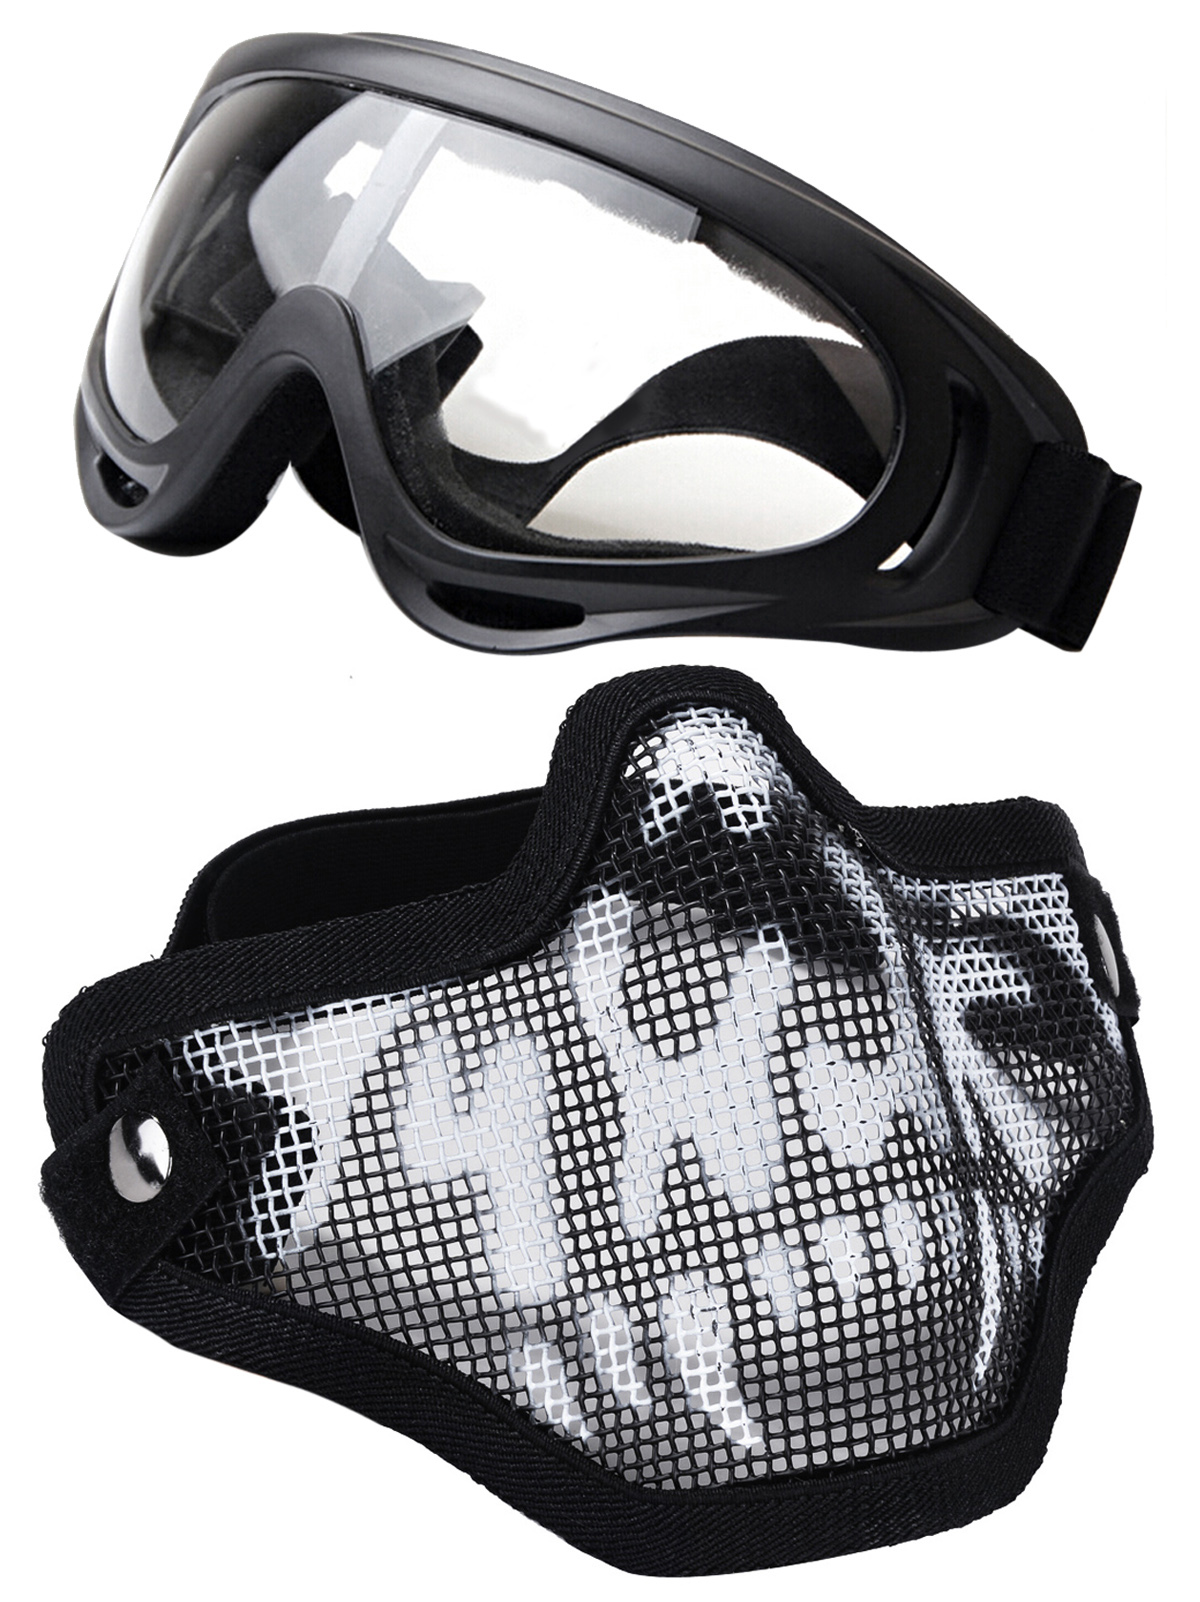 Outgeek Tactical Equipment Paintball Half Face Steel Mesh Mask and Goggles Set (Black & White) by Outgeek